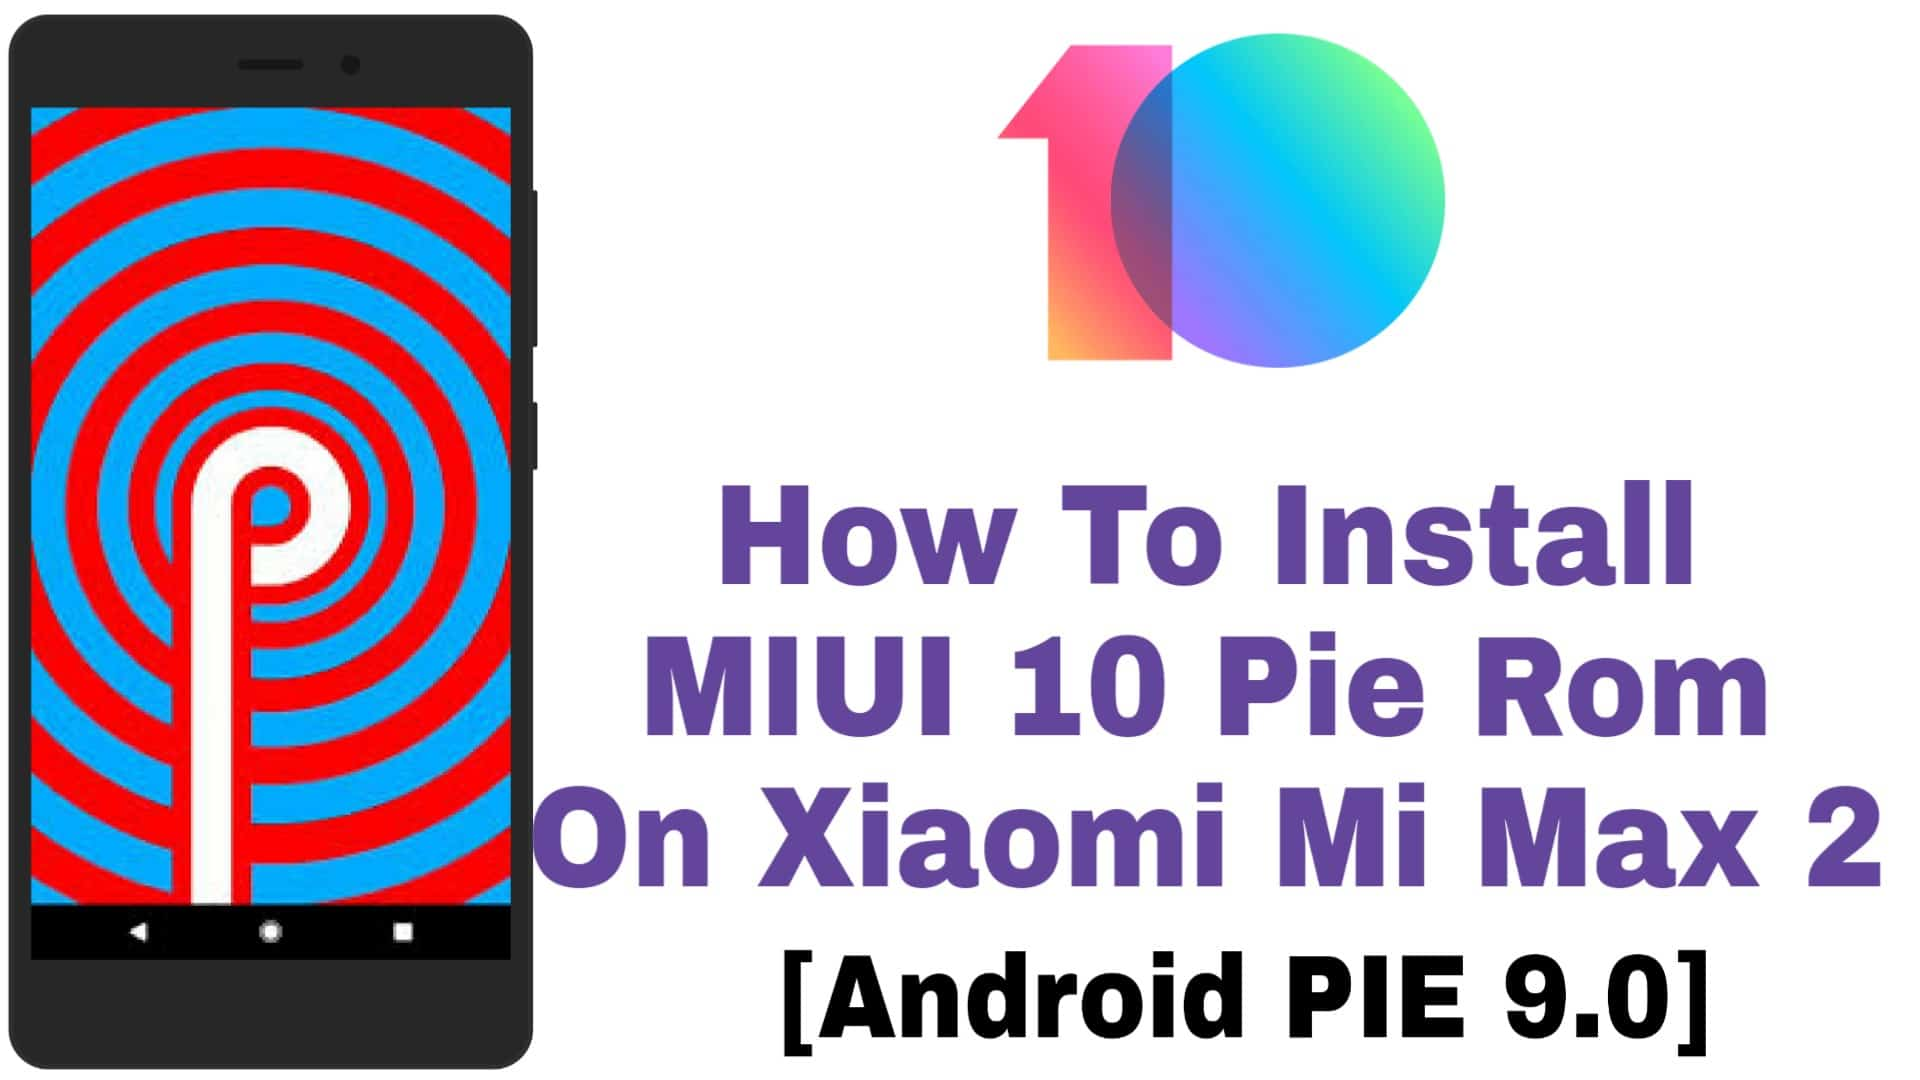 Android Pie 9.0 - How To Install MIUI 10 Pie Rom On Xiaomi Mi Max 2